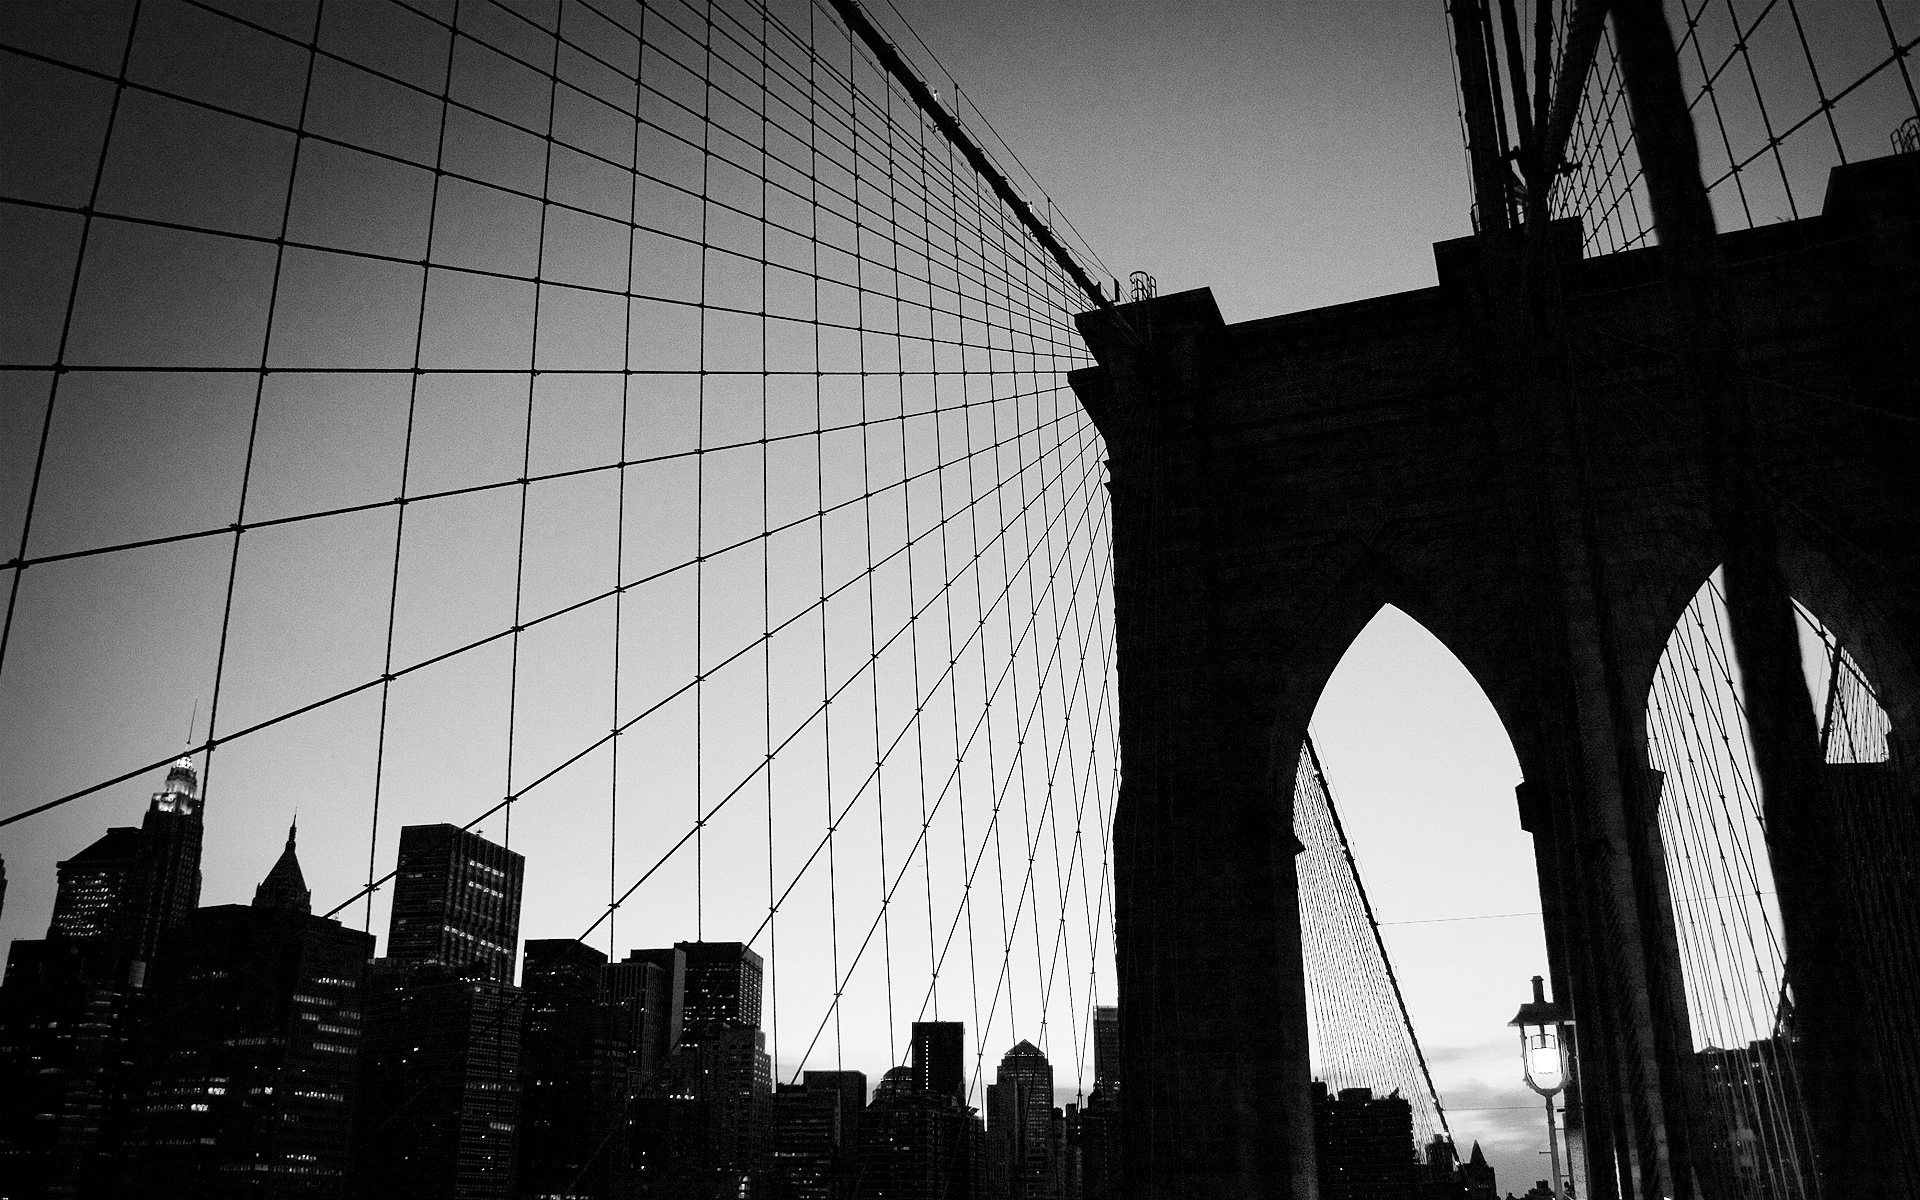 New York City Wallpapers Black and White wallpaper New York City 1920x1200